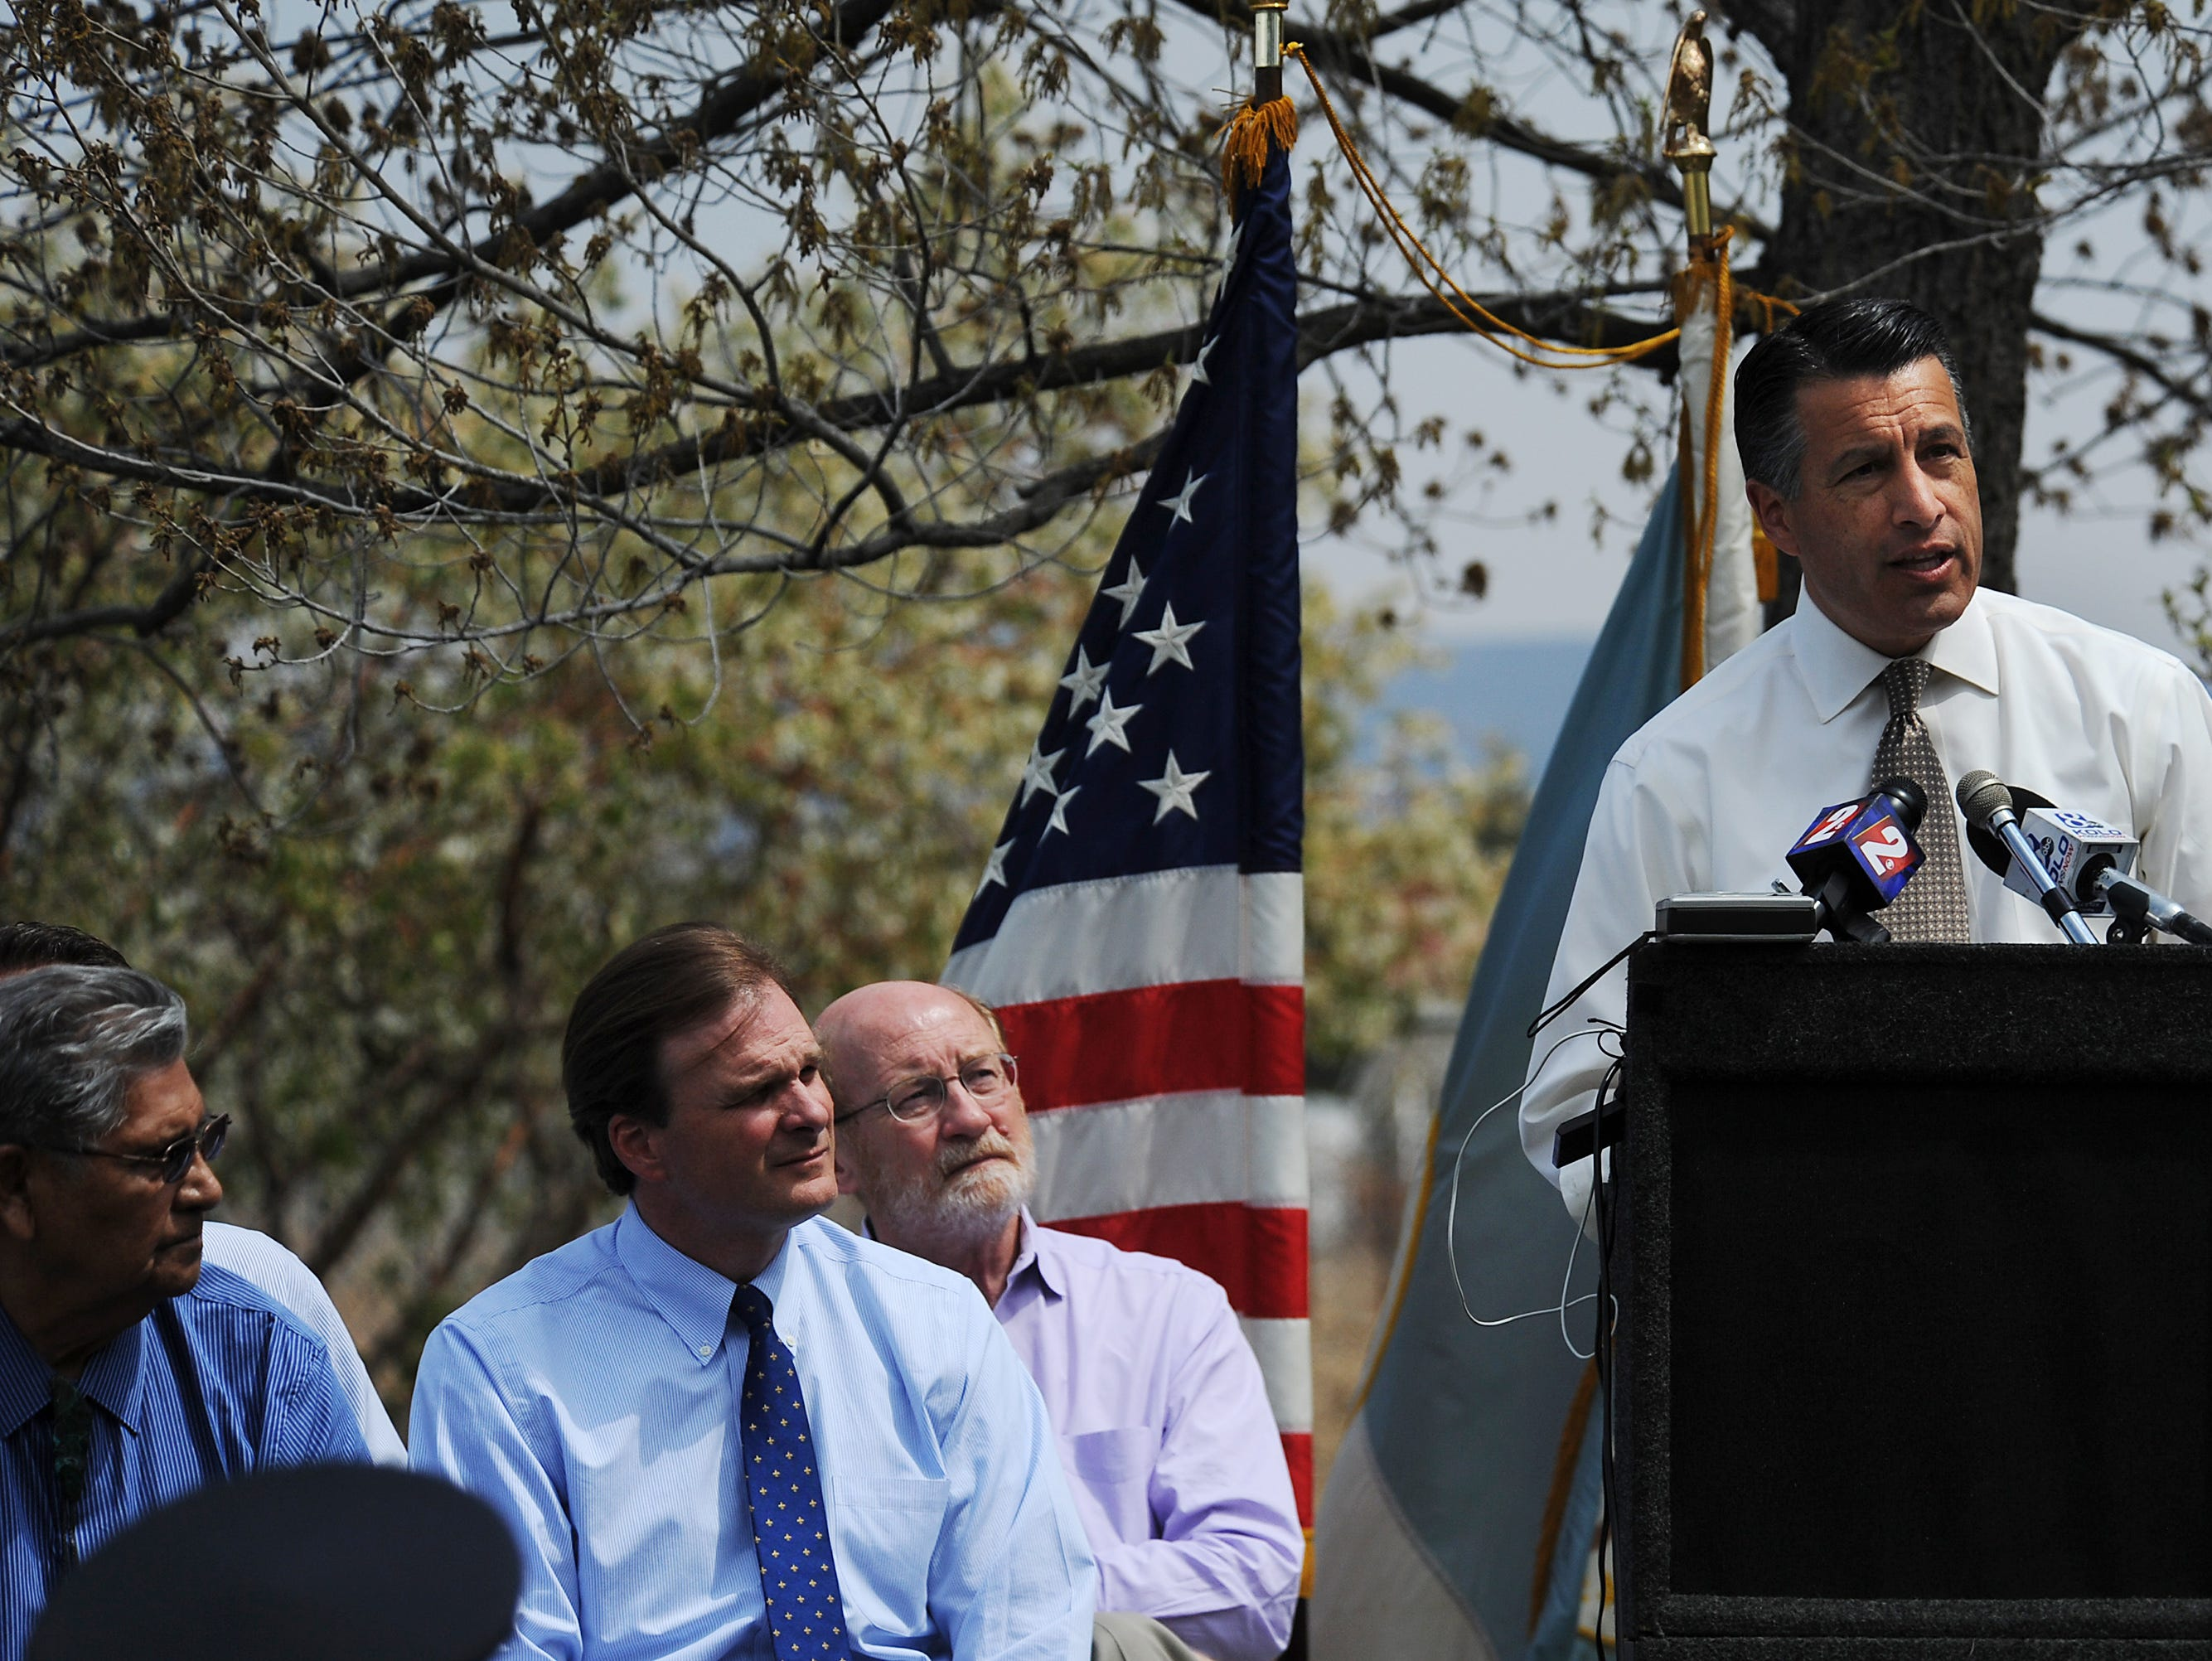 Nevada Governor Brian Sandoval speaks to those gathered during a press conference to announce that the Bi-State Sage Grouse will not be listed as threatened or endangered at the Nevada Dept. of Wildlife headquarters in Reno on April 21, 2015.